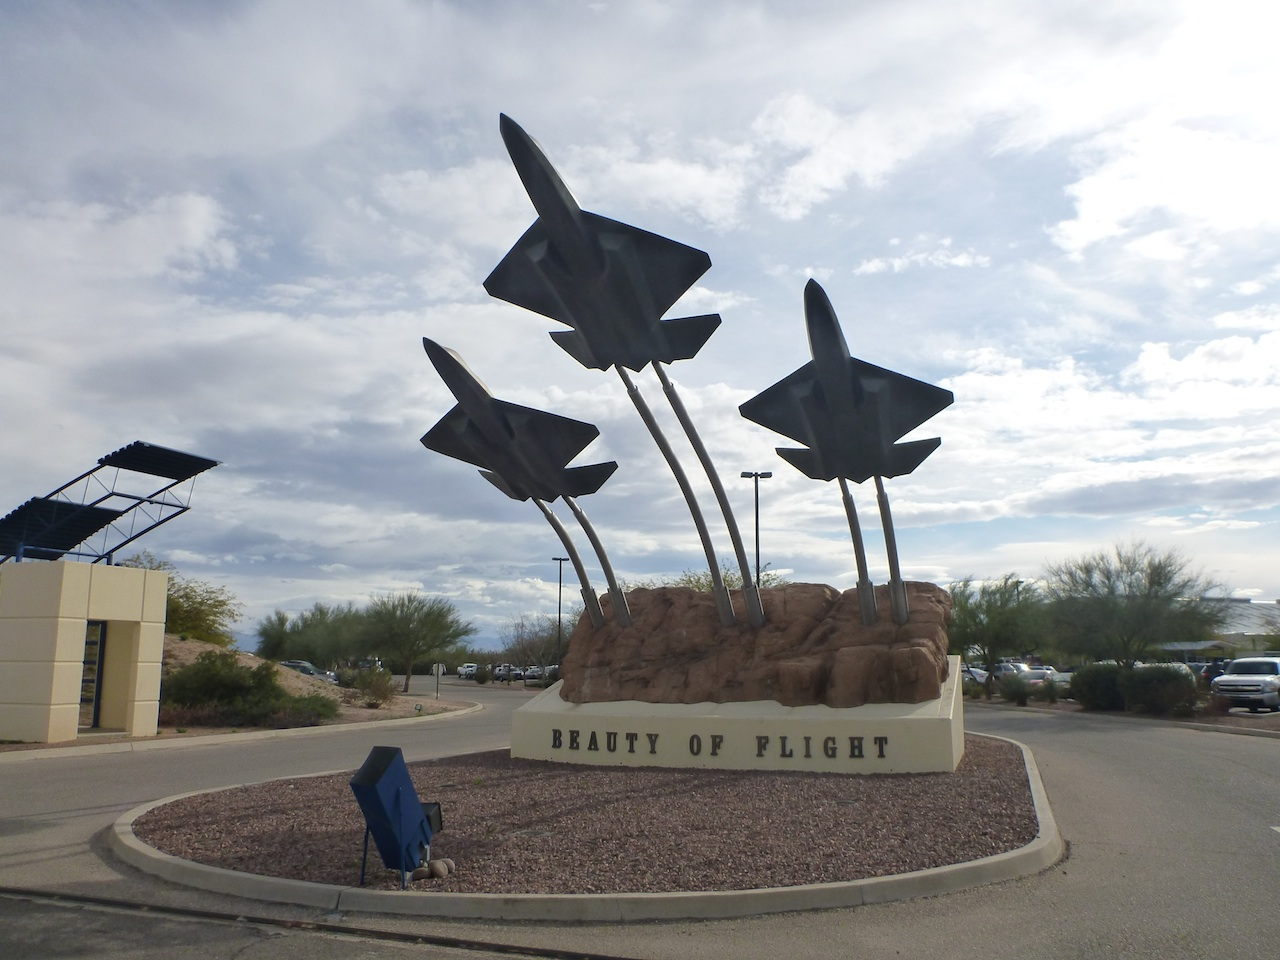 Entrance To The PIMA Air and Space Museum In Tucson, AZ